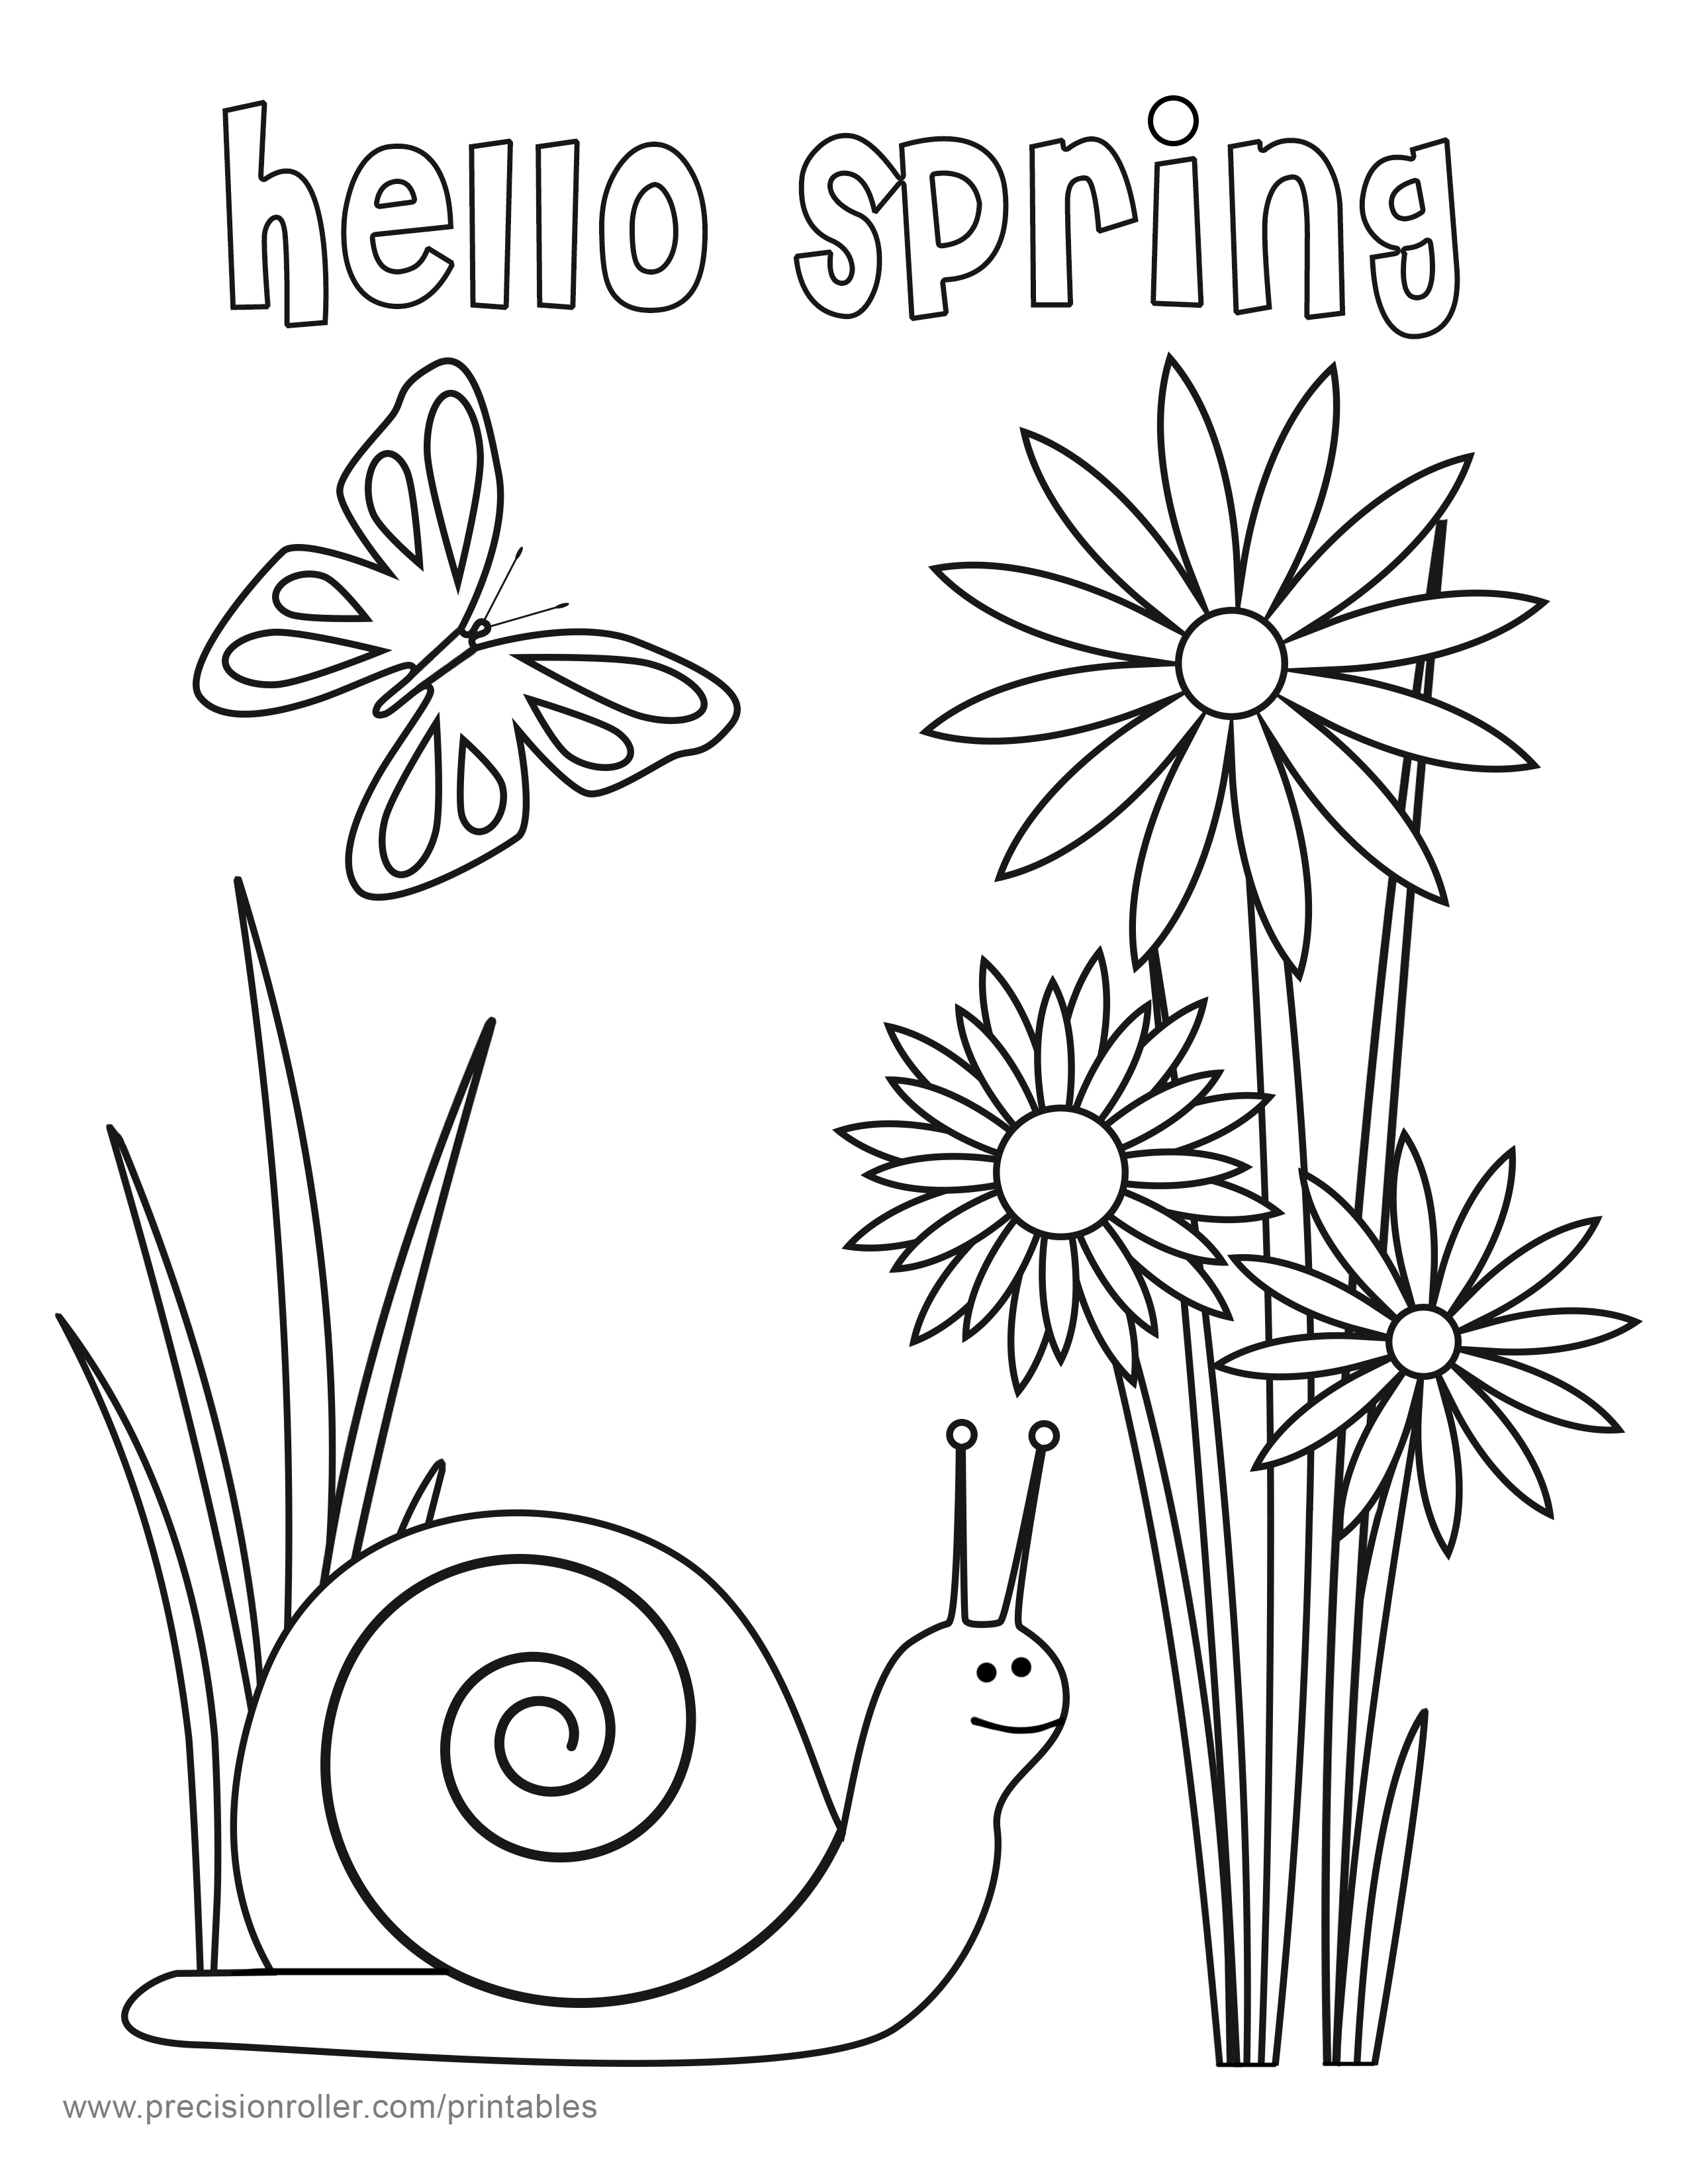 spring coloring pages printable - hello spring coloring page